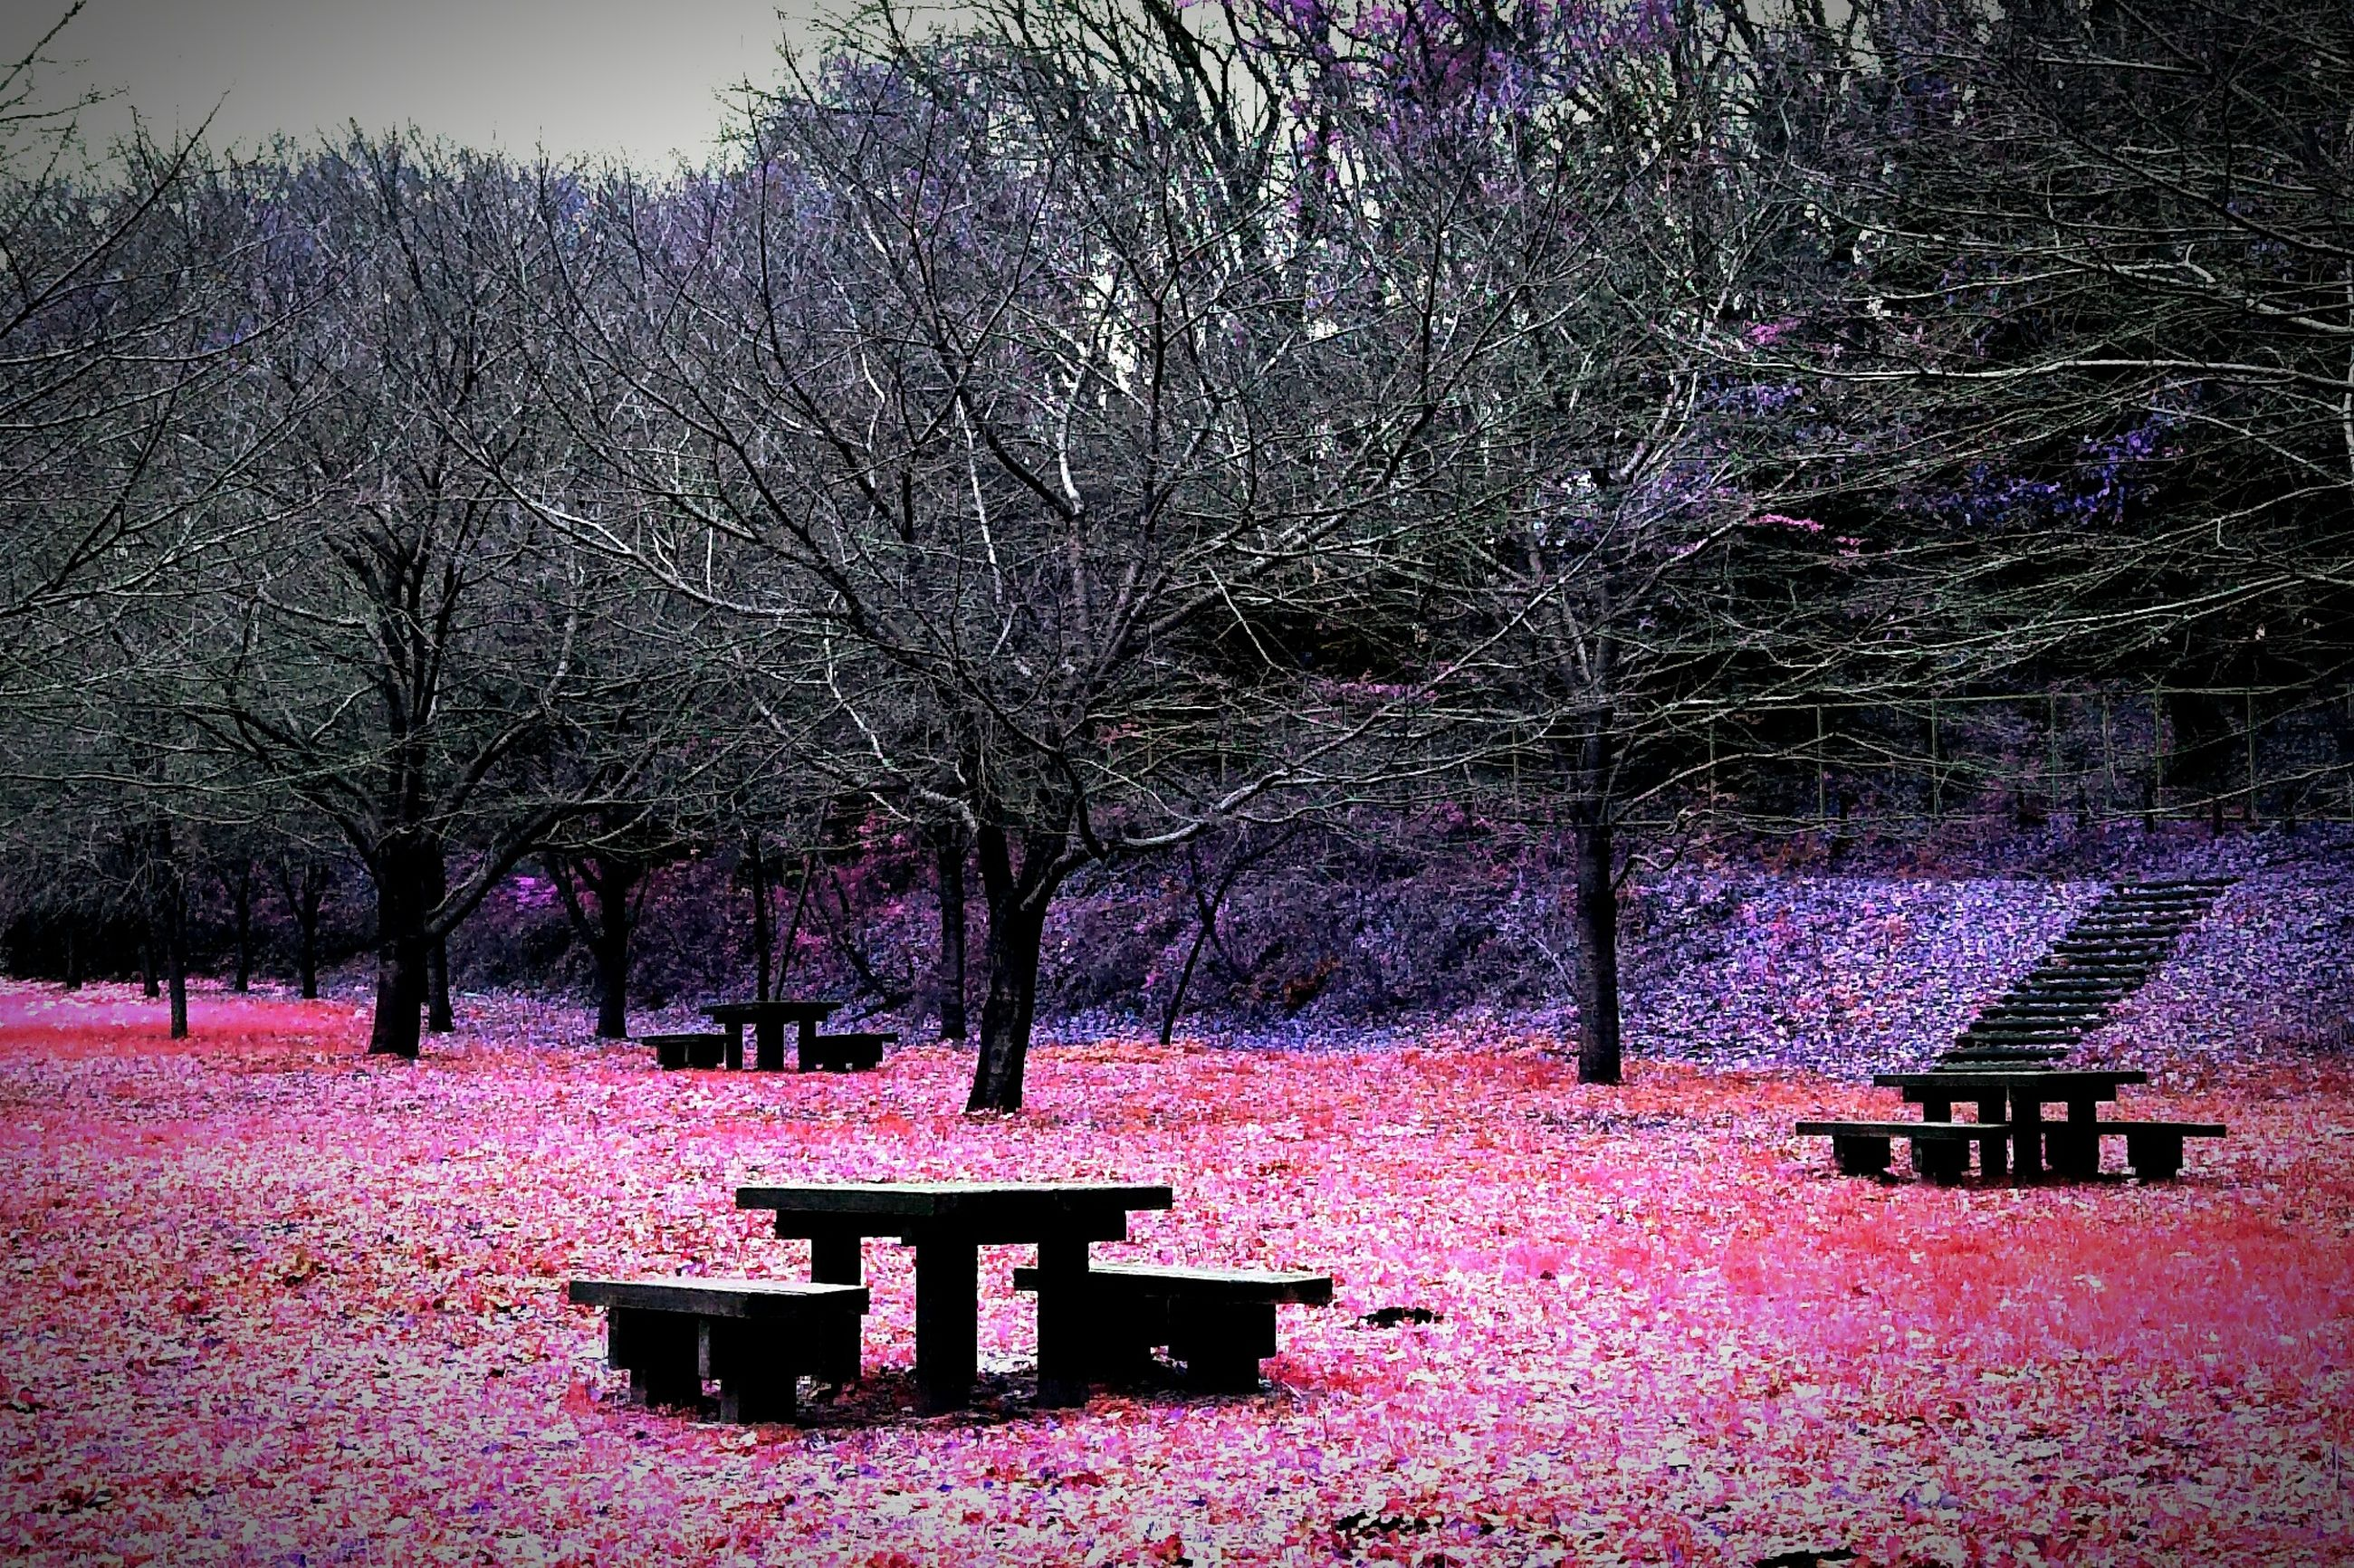 tree, built structure, architecture, building exterior, flower, season, branch, nature, house, growth, pink color, beauty in nature, bare tree, weather, outdoors, park - man made space, day, no people, tranquility, decoration